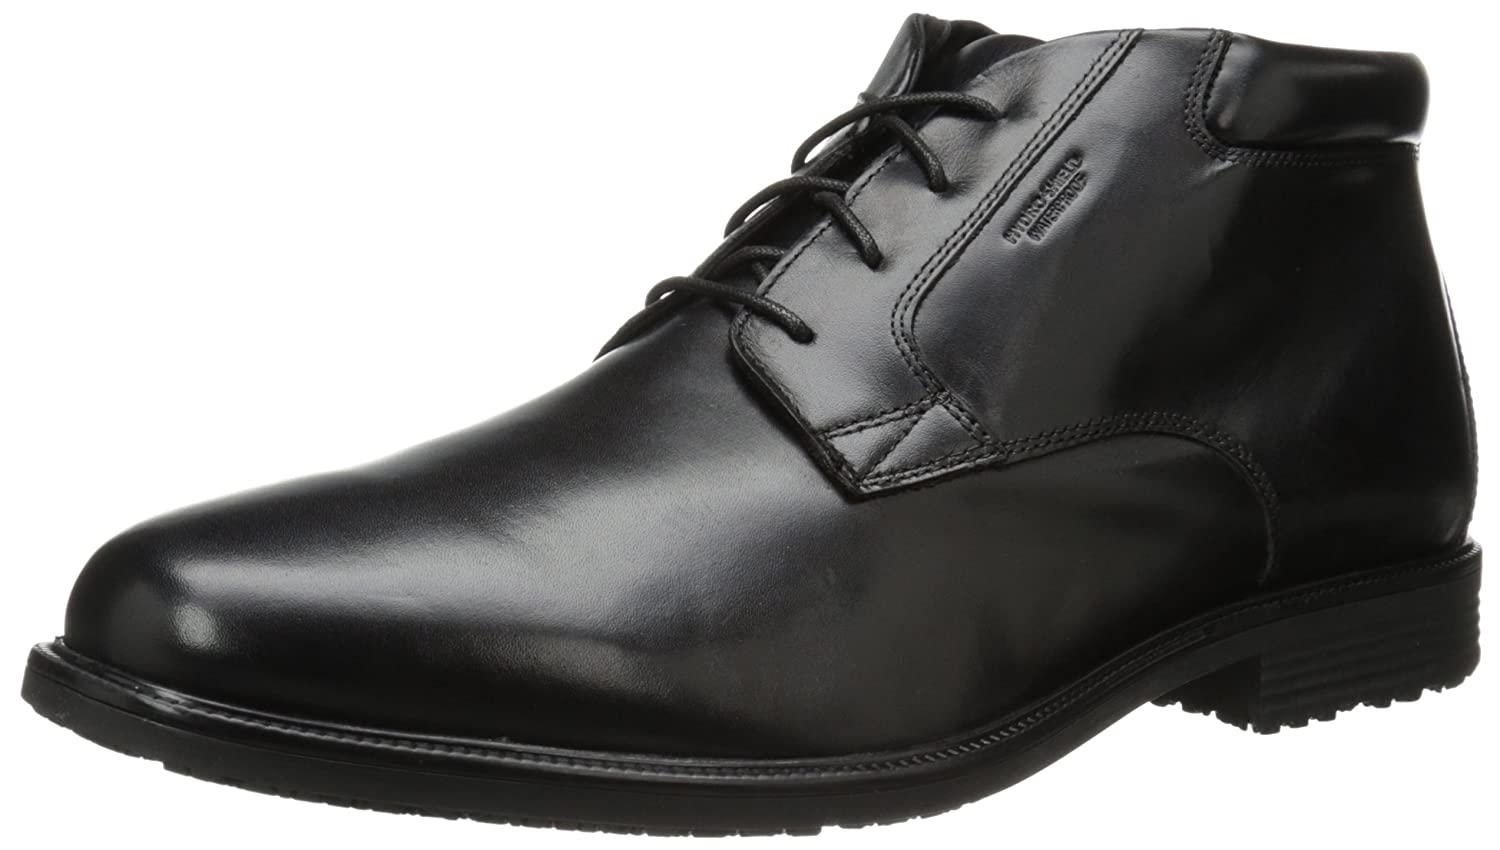 Rockport Men's Essential Details Waterproof Dress Chukka Boot Rockport Footwear Mens -